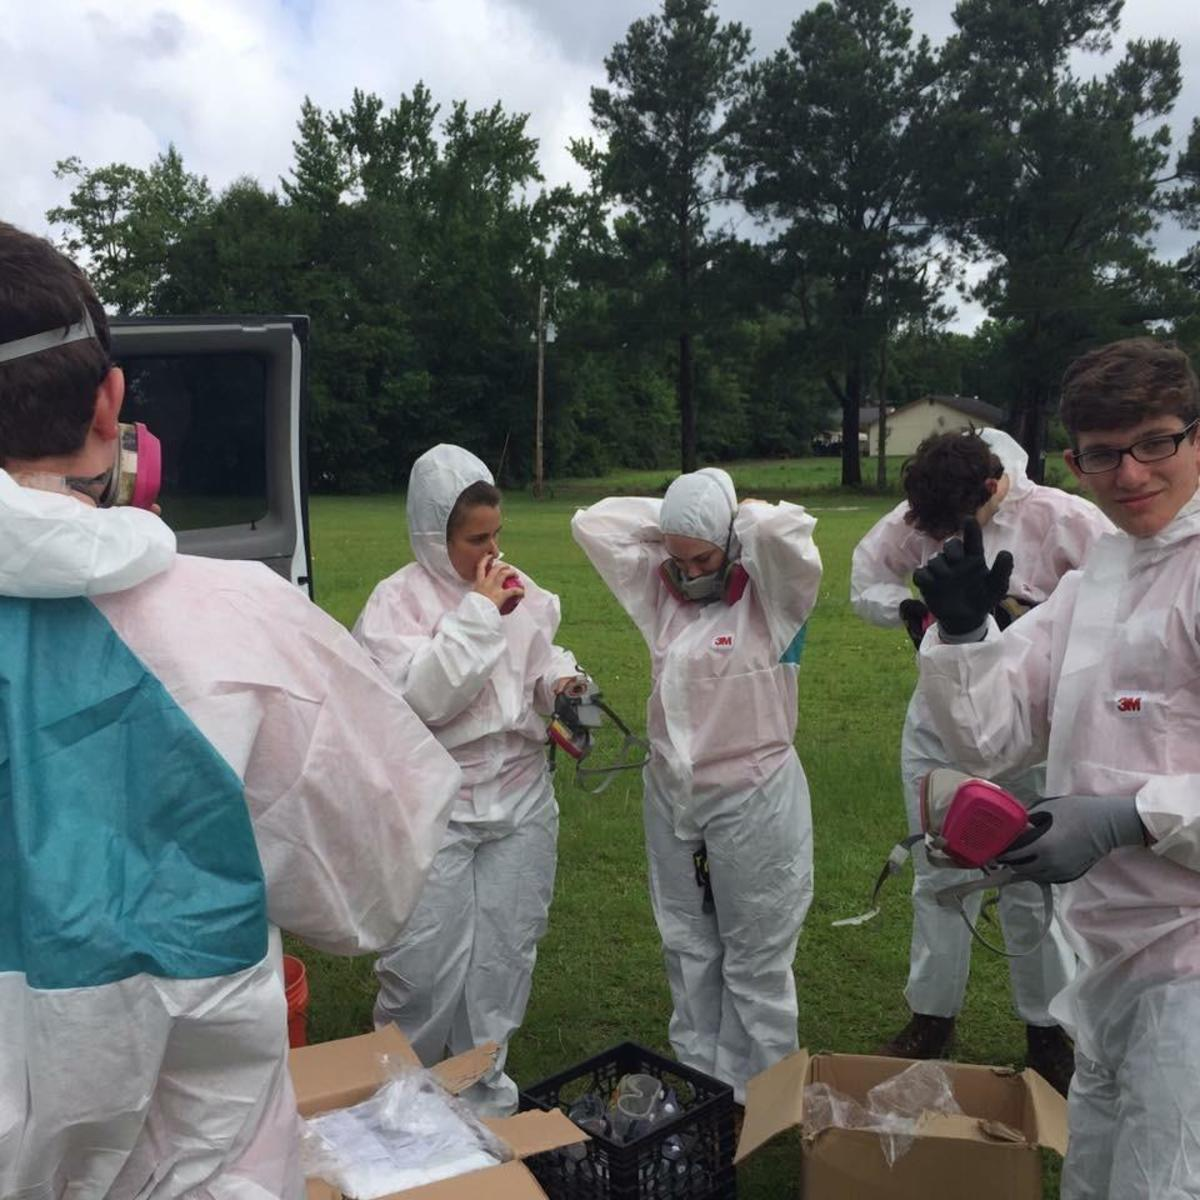 Clad in hazmat suits, goggles, and gas masks, Project Tikvah attendees went into a home in Georgetown, South Carolina to try and provide flood relief.